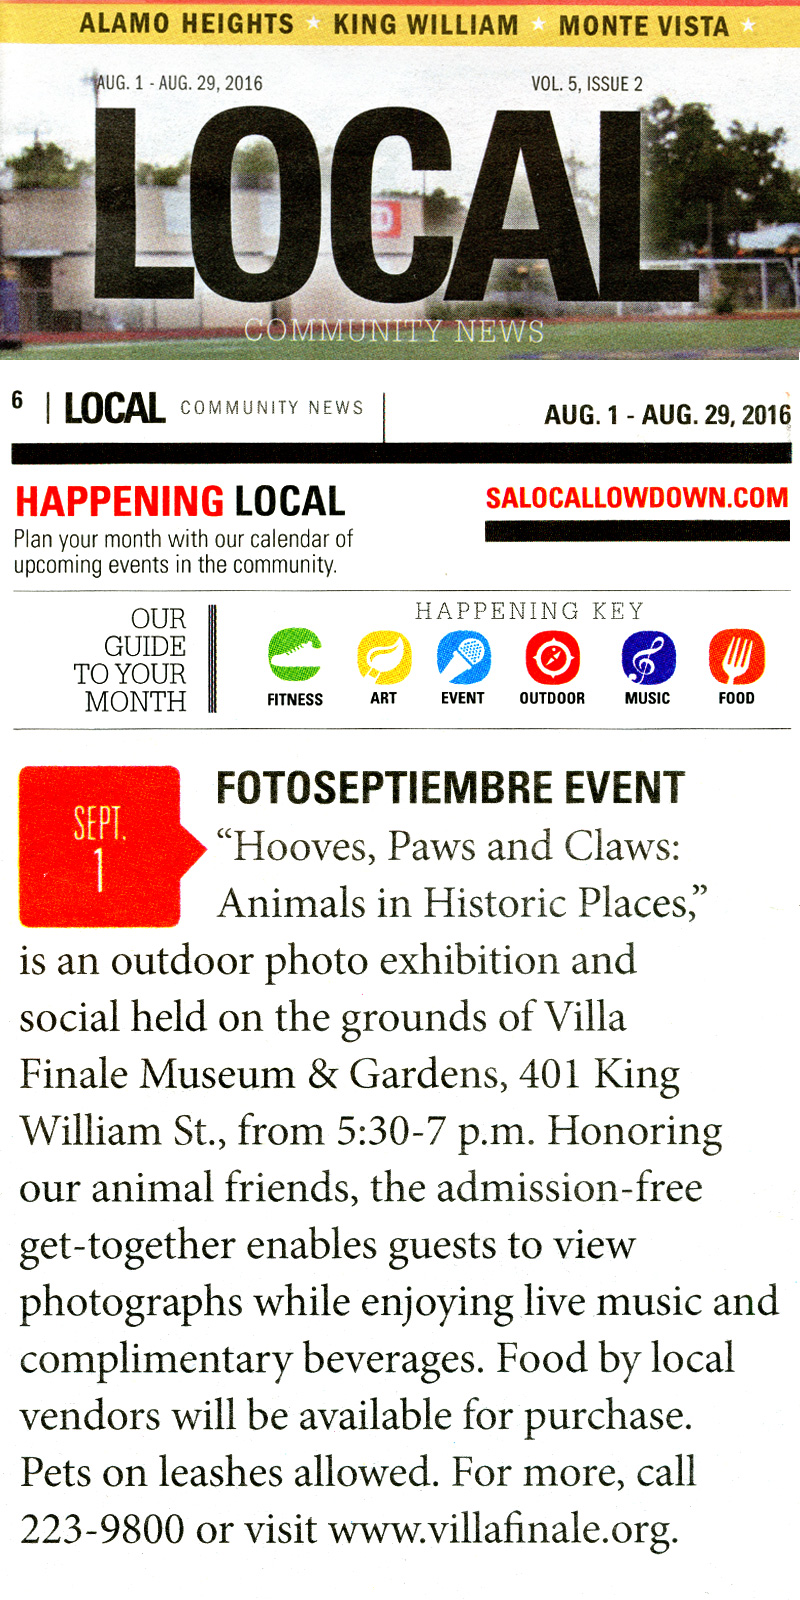 2016-FOTOSEPTIEMBRE-USA-Press-Archives_Hooves-Paws-Claws-Exhibit_Villa-Finale_Local-Community-News